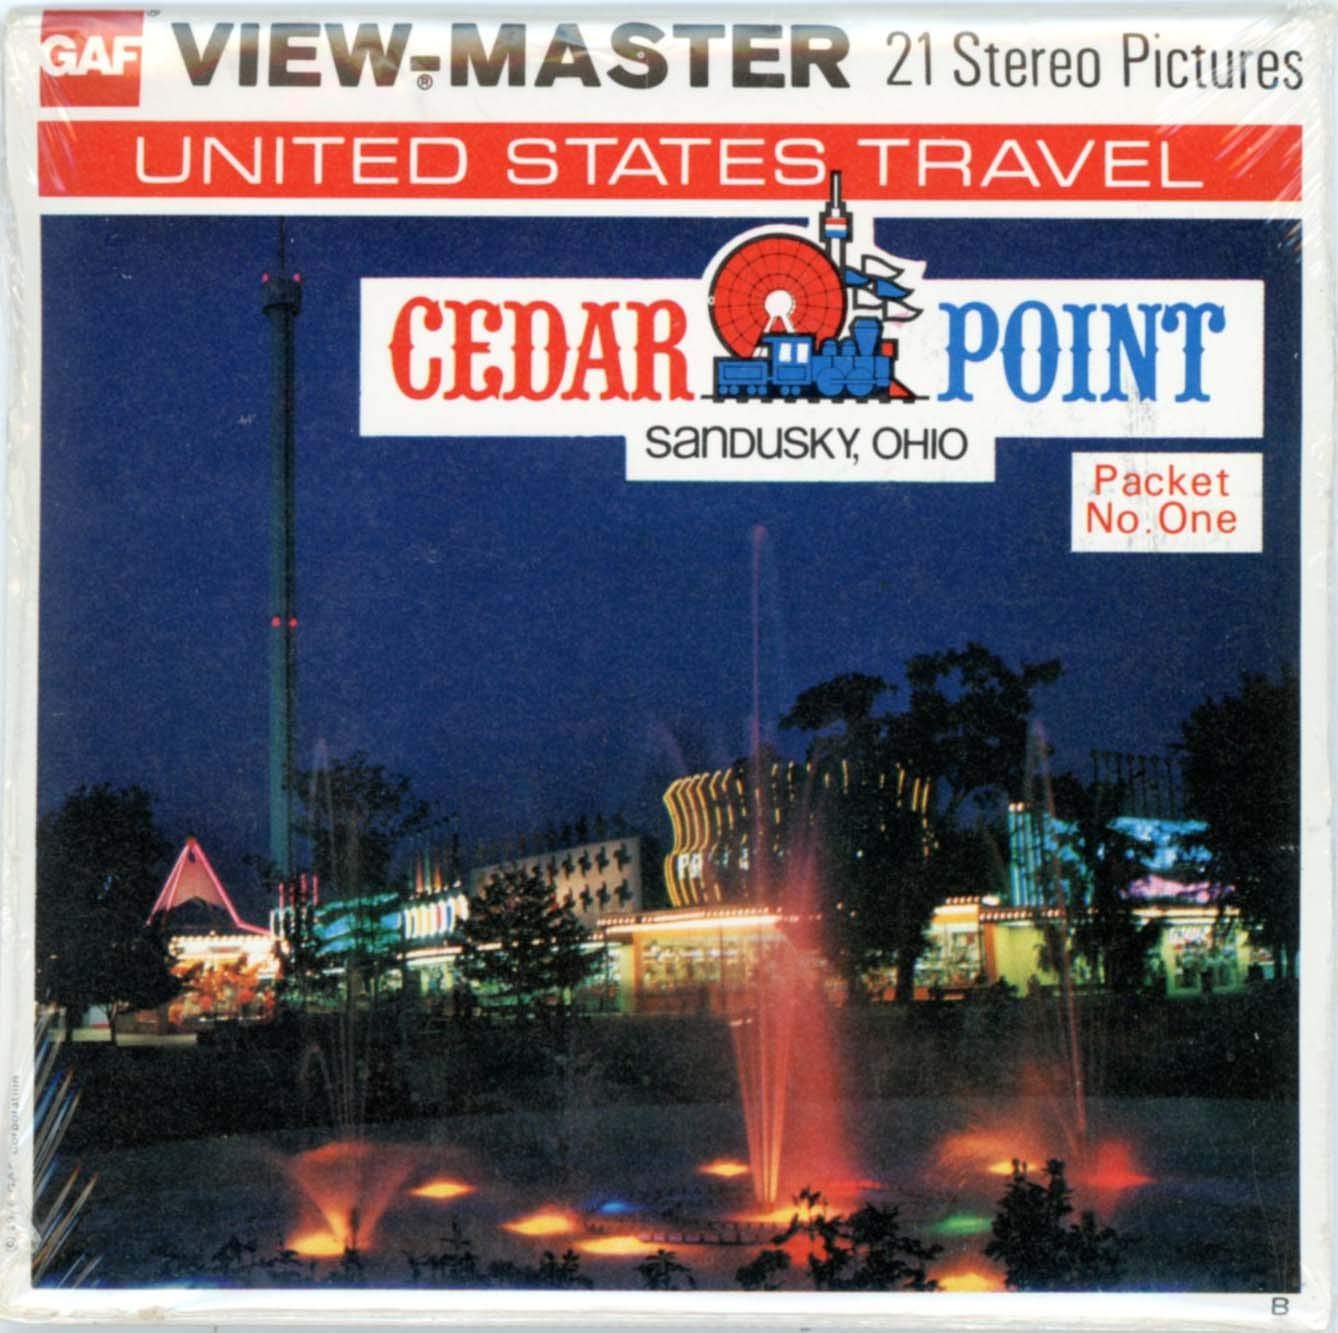 Cedar Point- Sandusky, Ohio - Classic ViewMaster - 3 Reel Set - 21 3D Images - Mint by 3Dstereo ViewMaster